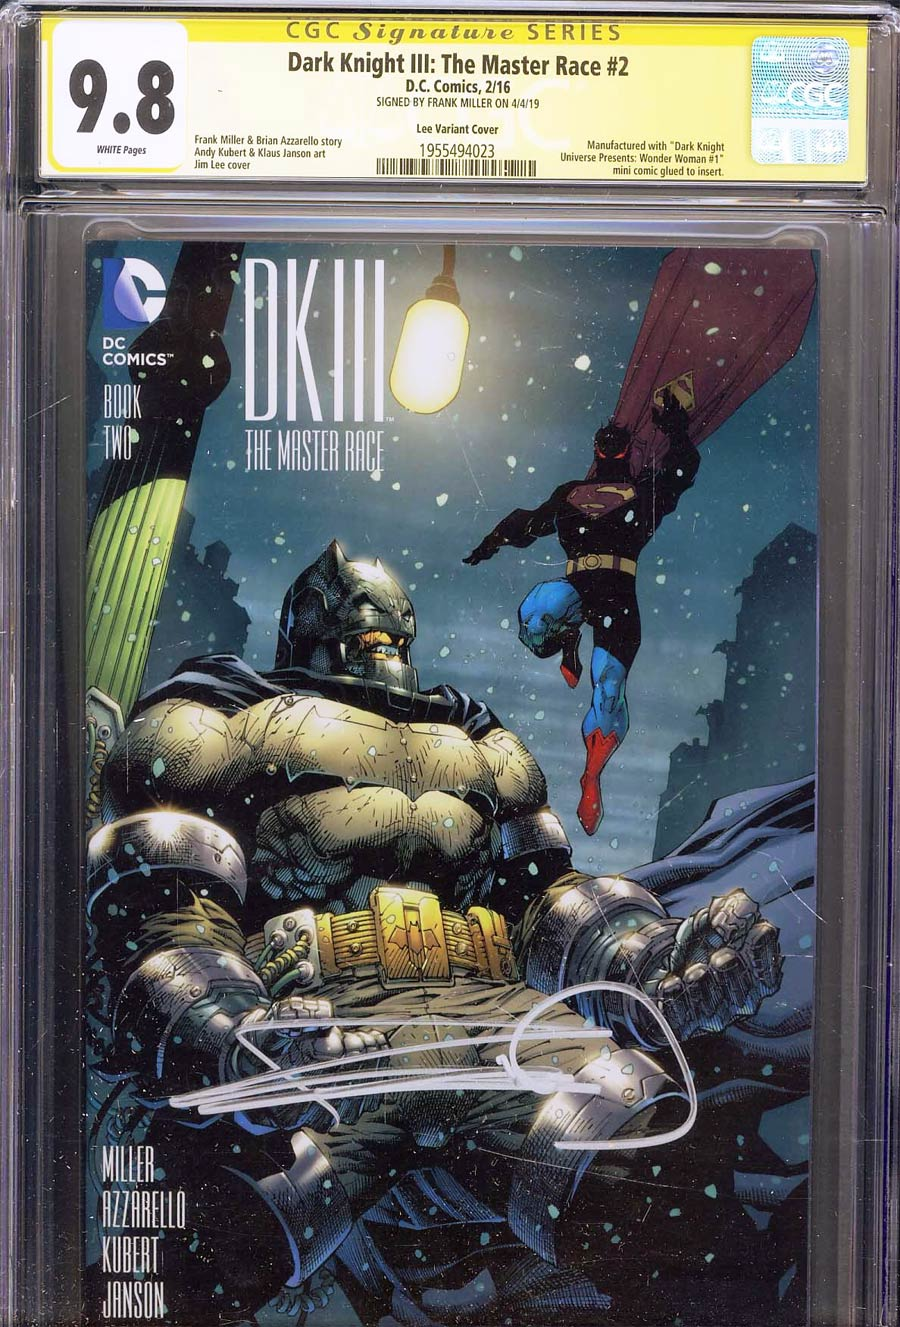 Dark Knight III The Master Race #2 CGC SS 9.8 Signed By Frank Miller Incentive Jim Lee Variant Cover